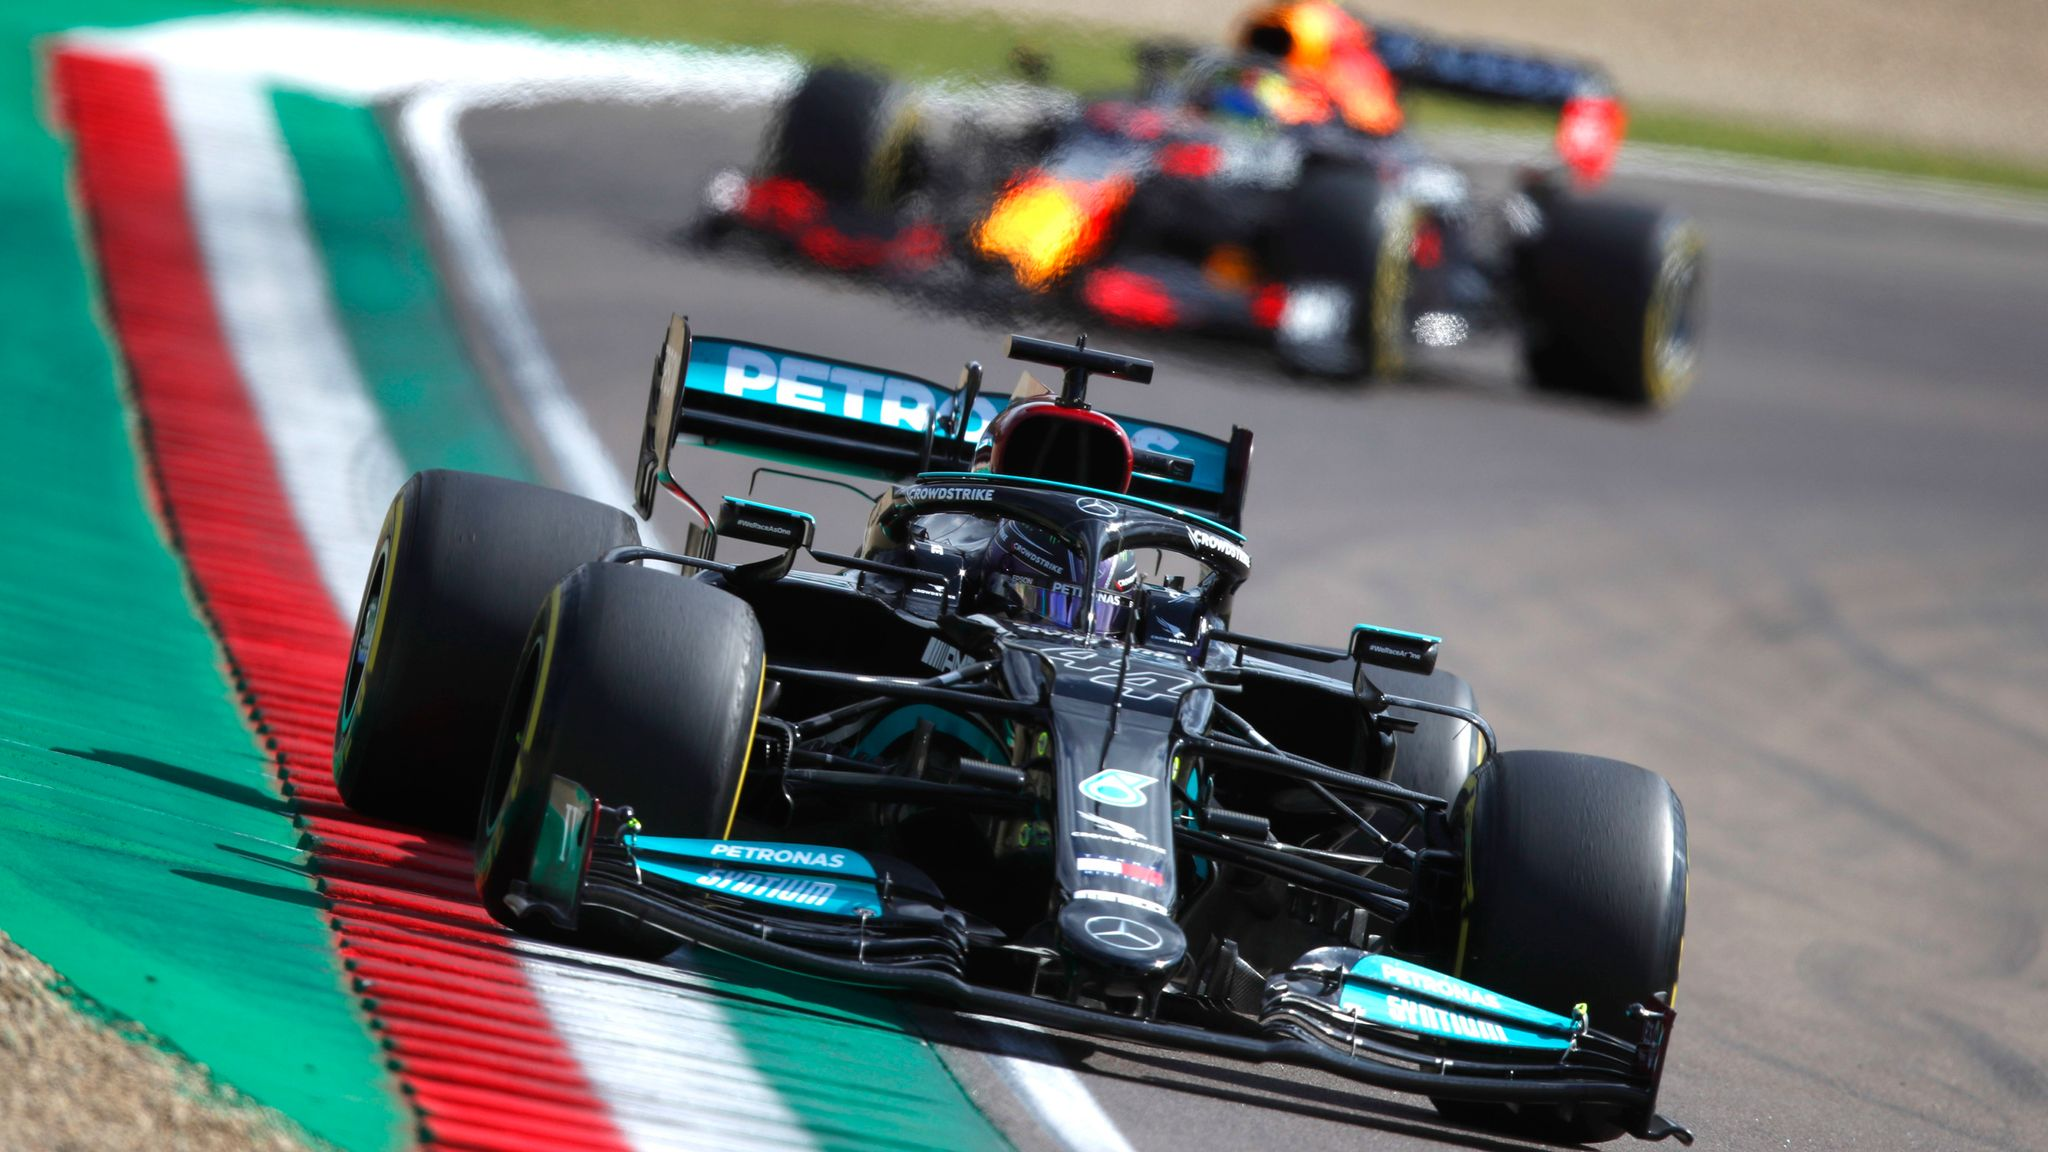 F1 Sprint Qualifying approved for three Grands Prix in 2021 season in  shake-up to weekend format   F1 News